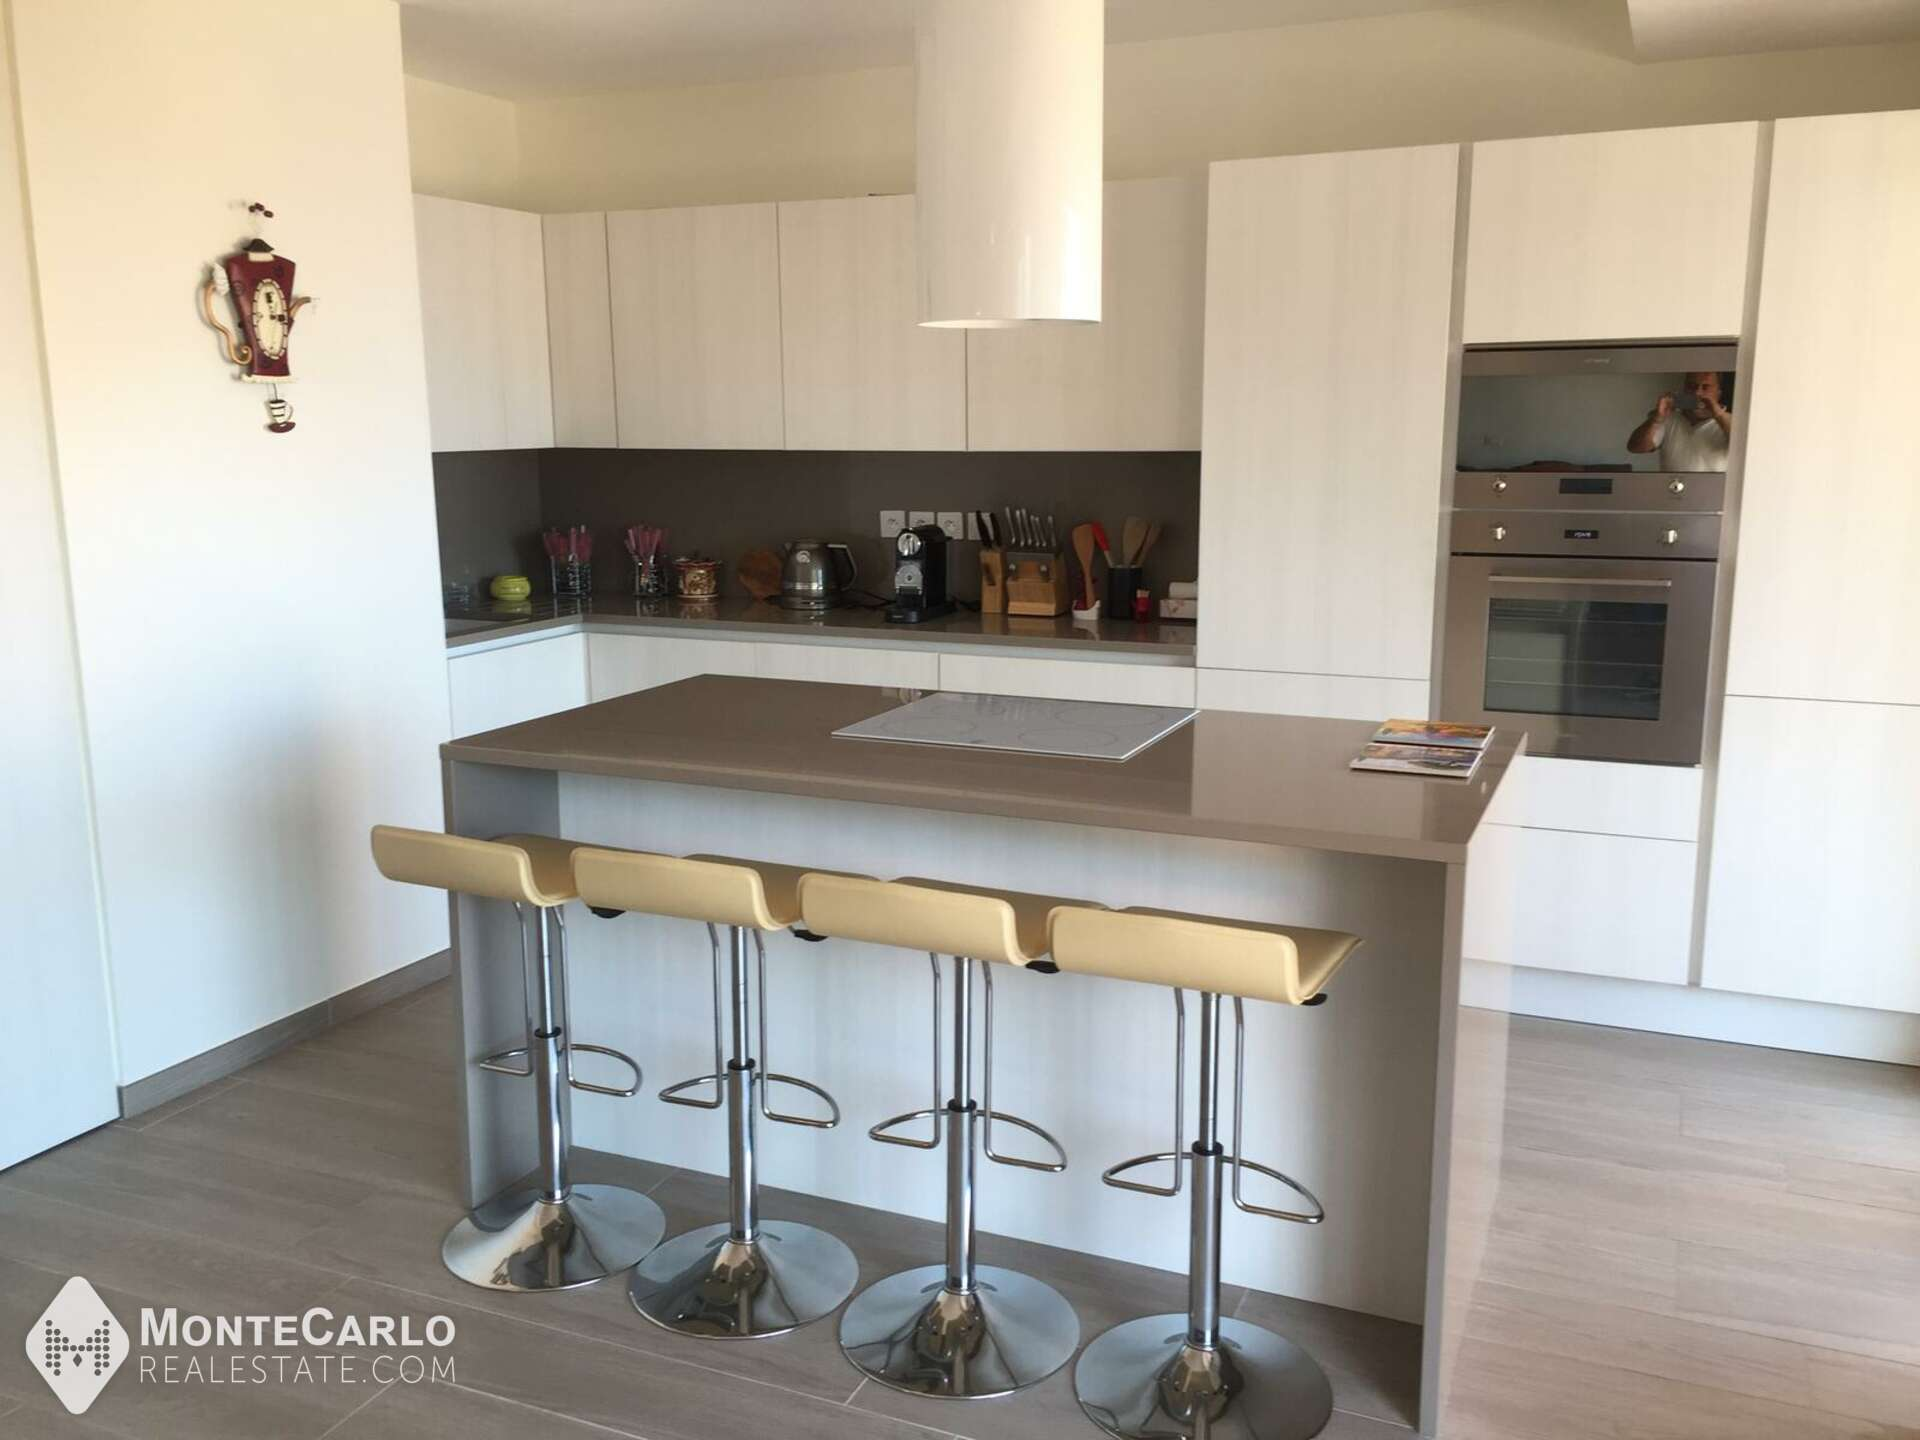 For sale Beausoleil - Apartment / 3 rooms : 1 190 000 € | Monte-Carlo Real Estate [MIV0146]